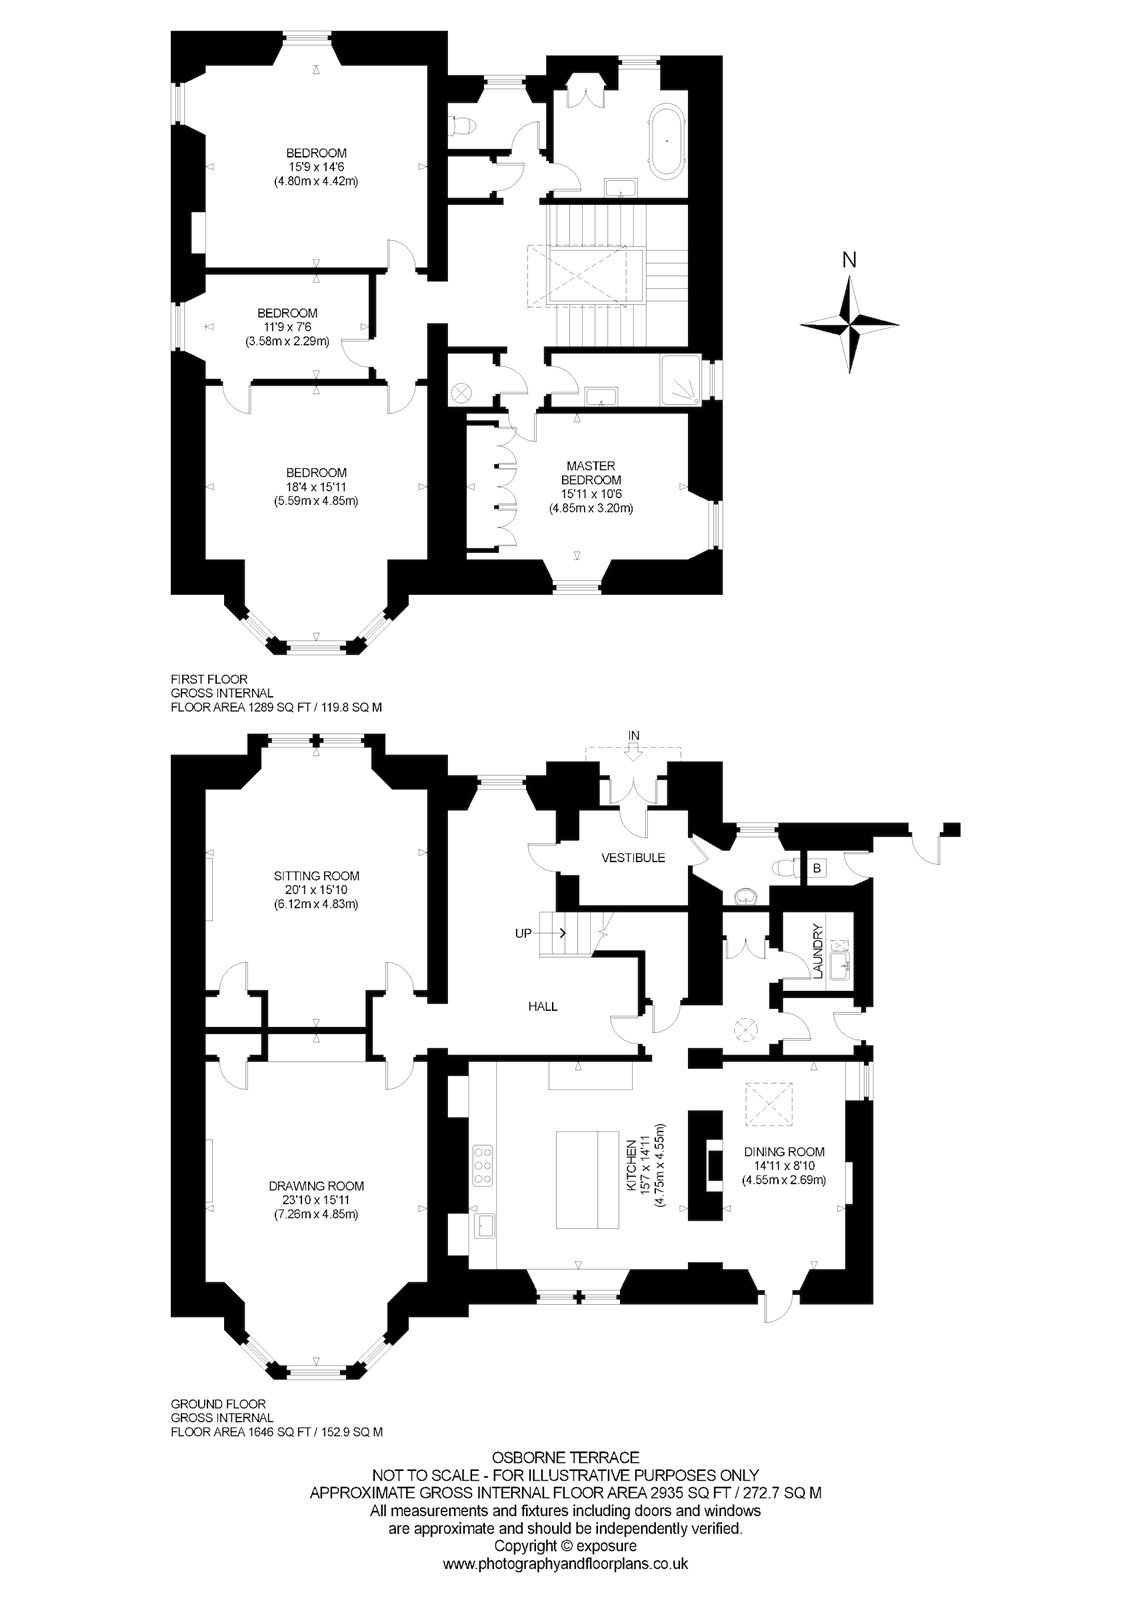 Floorplans for Osborne Terrace, Edinburgh, Midlothian, EH12